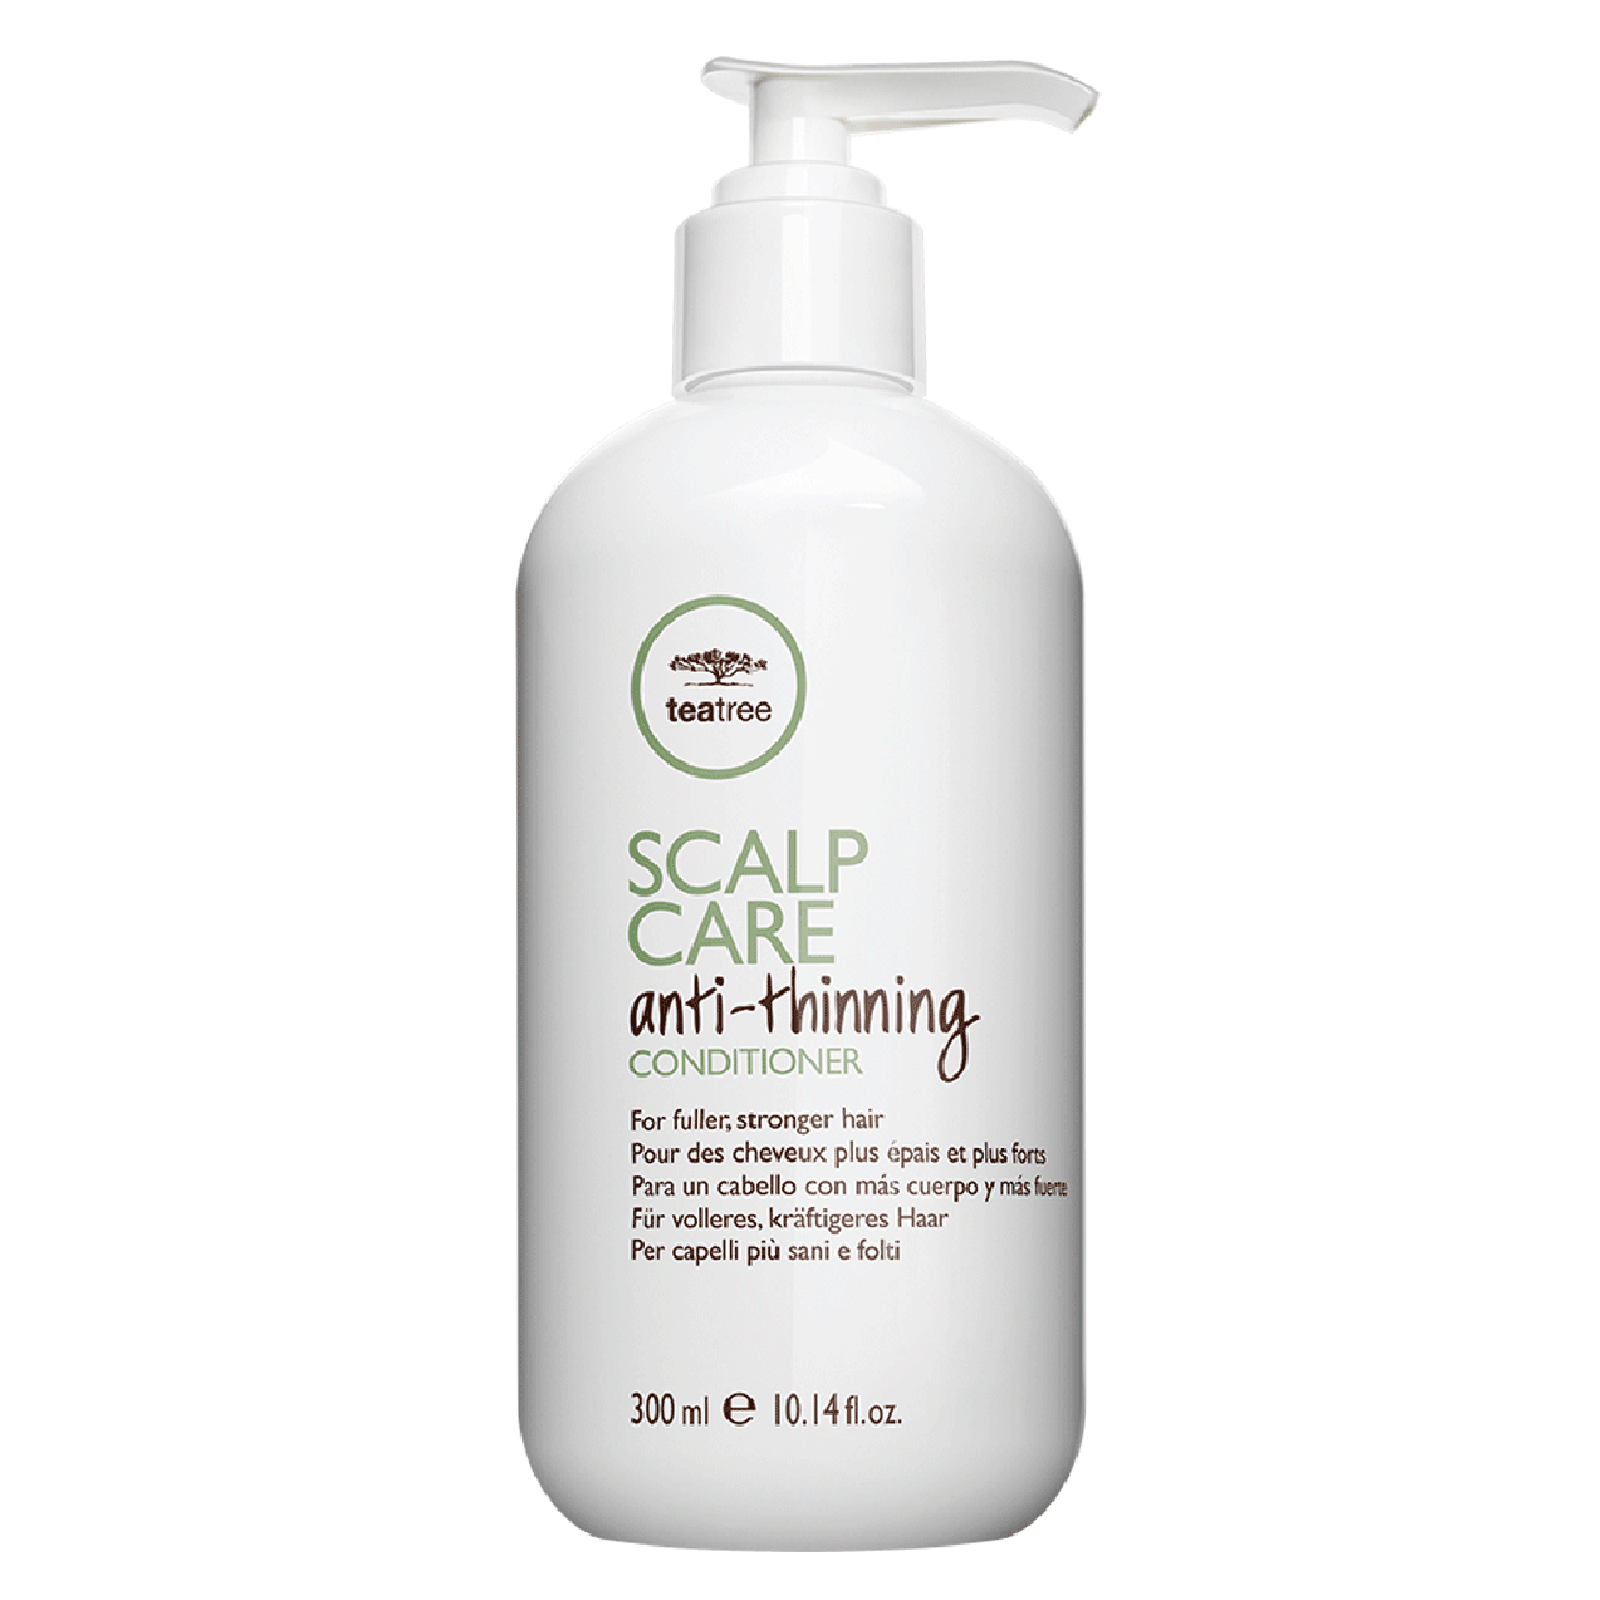 Scalp Care Anti-Thinning Conditioner